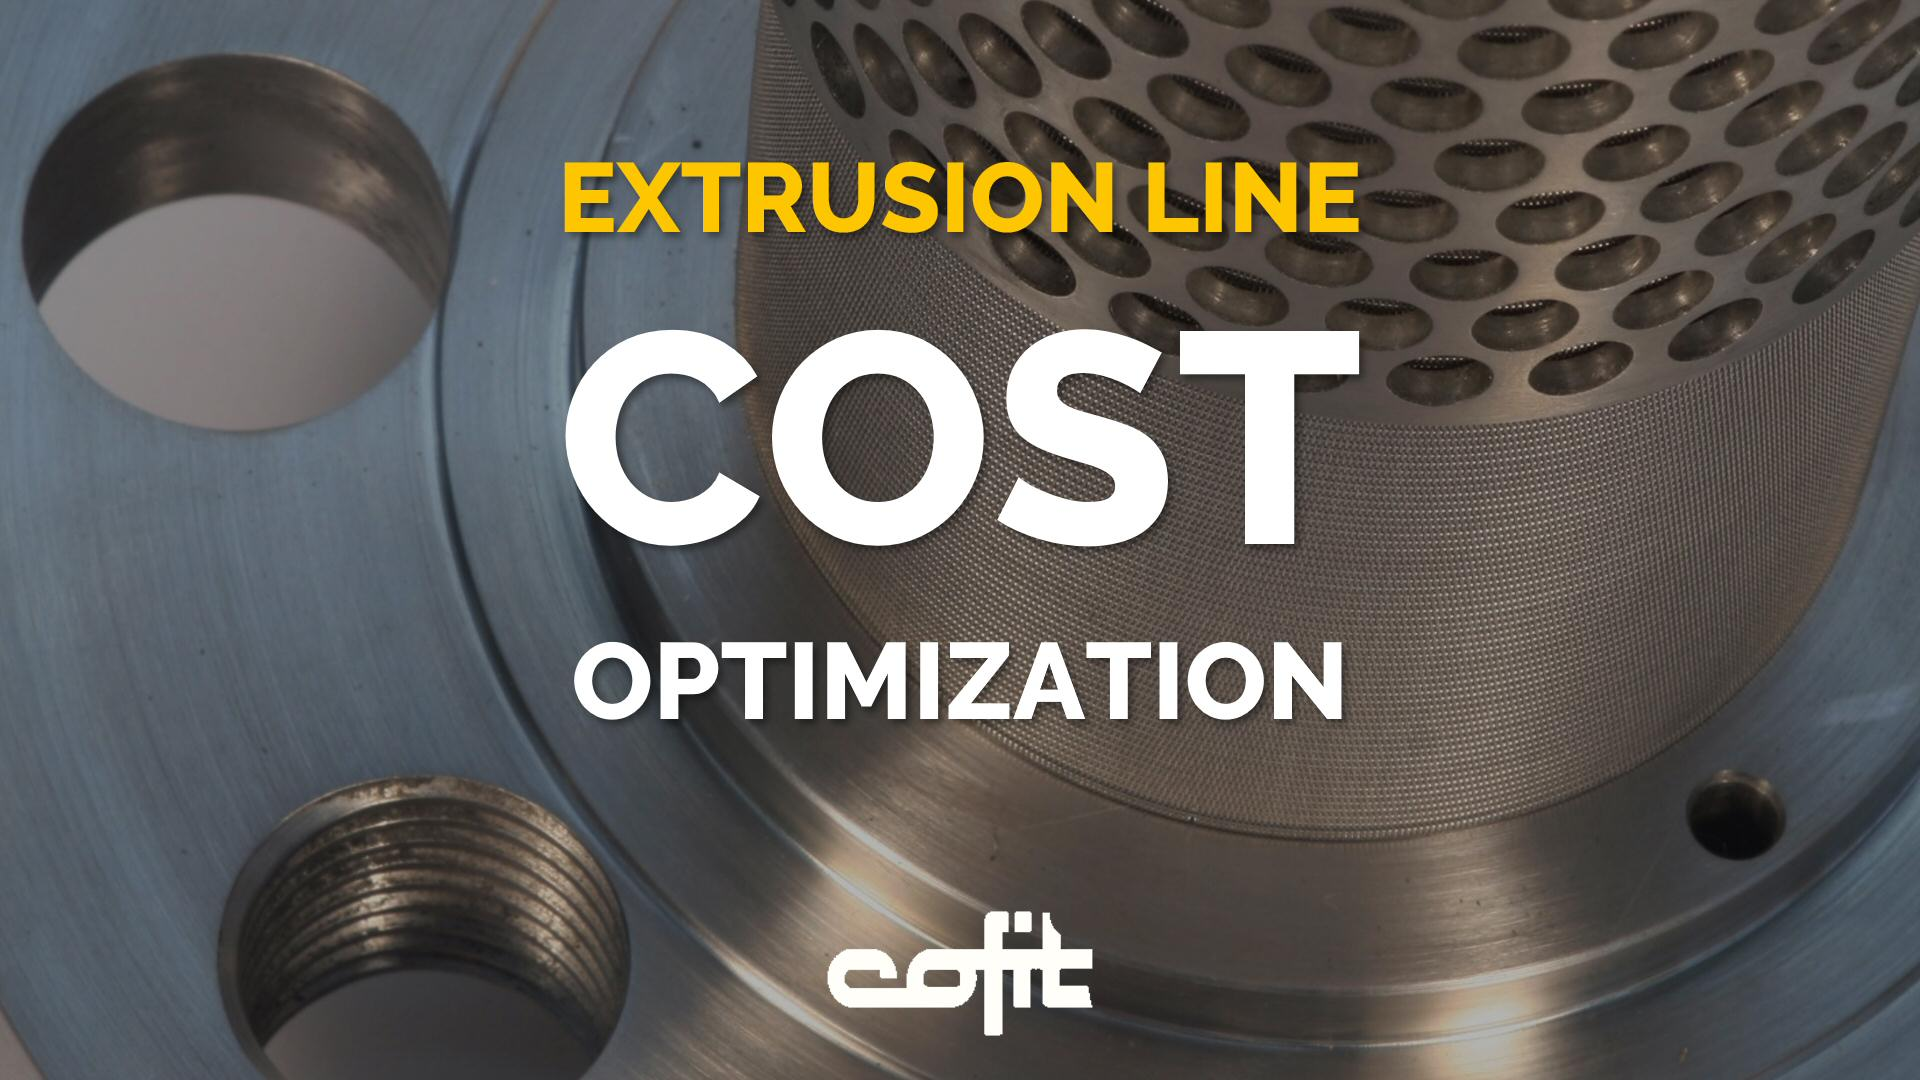 Extrusion line cost optimization